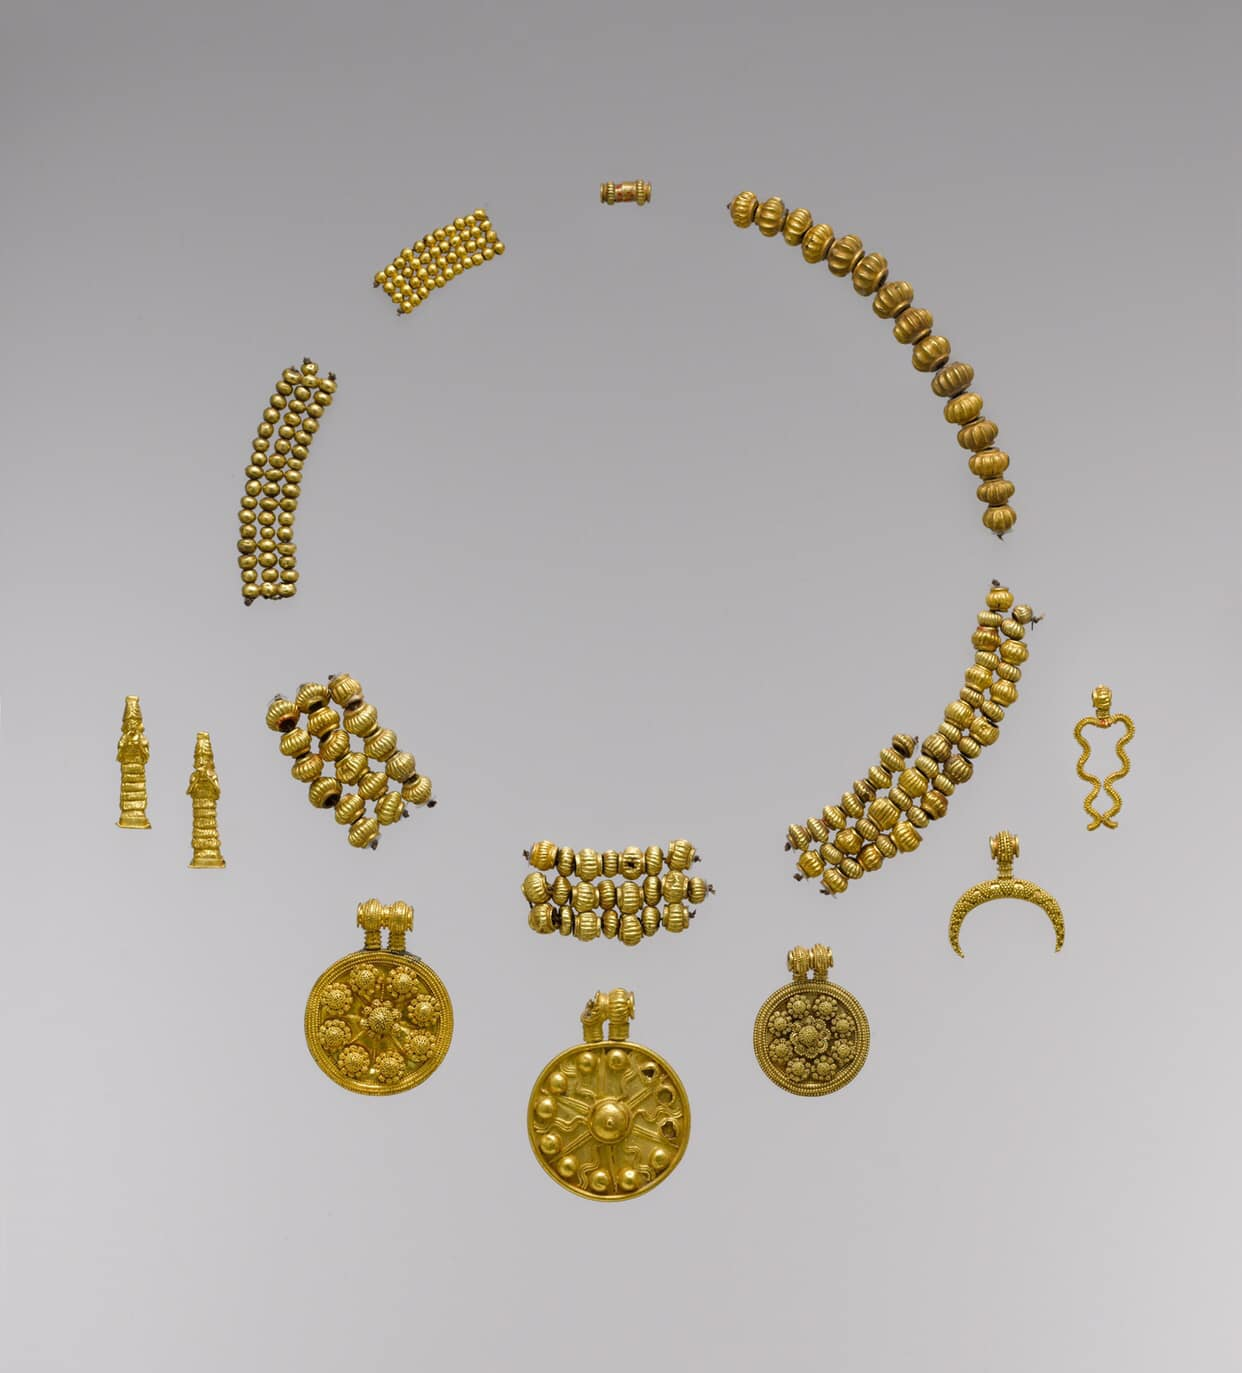 Granulated Beads and Charms